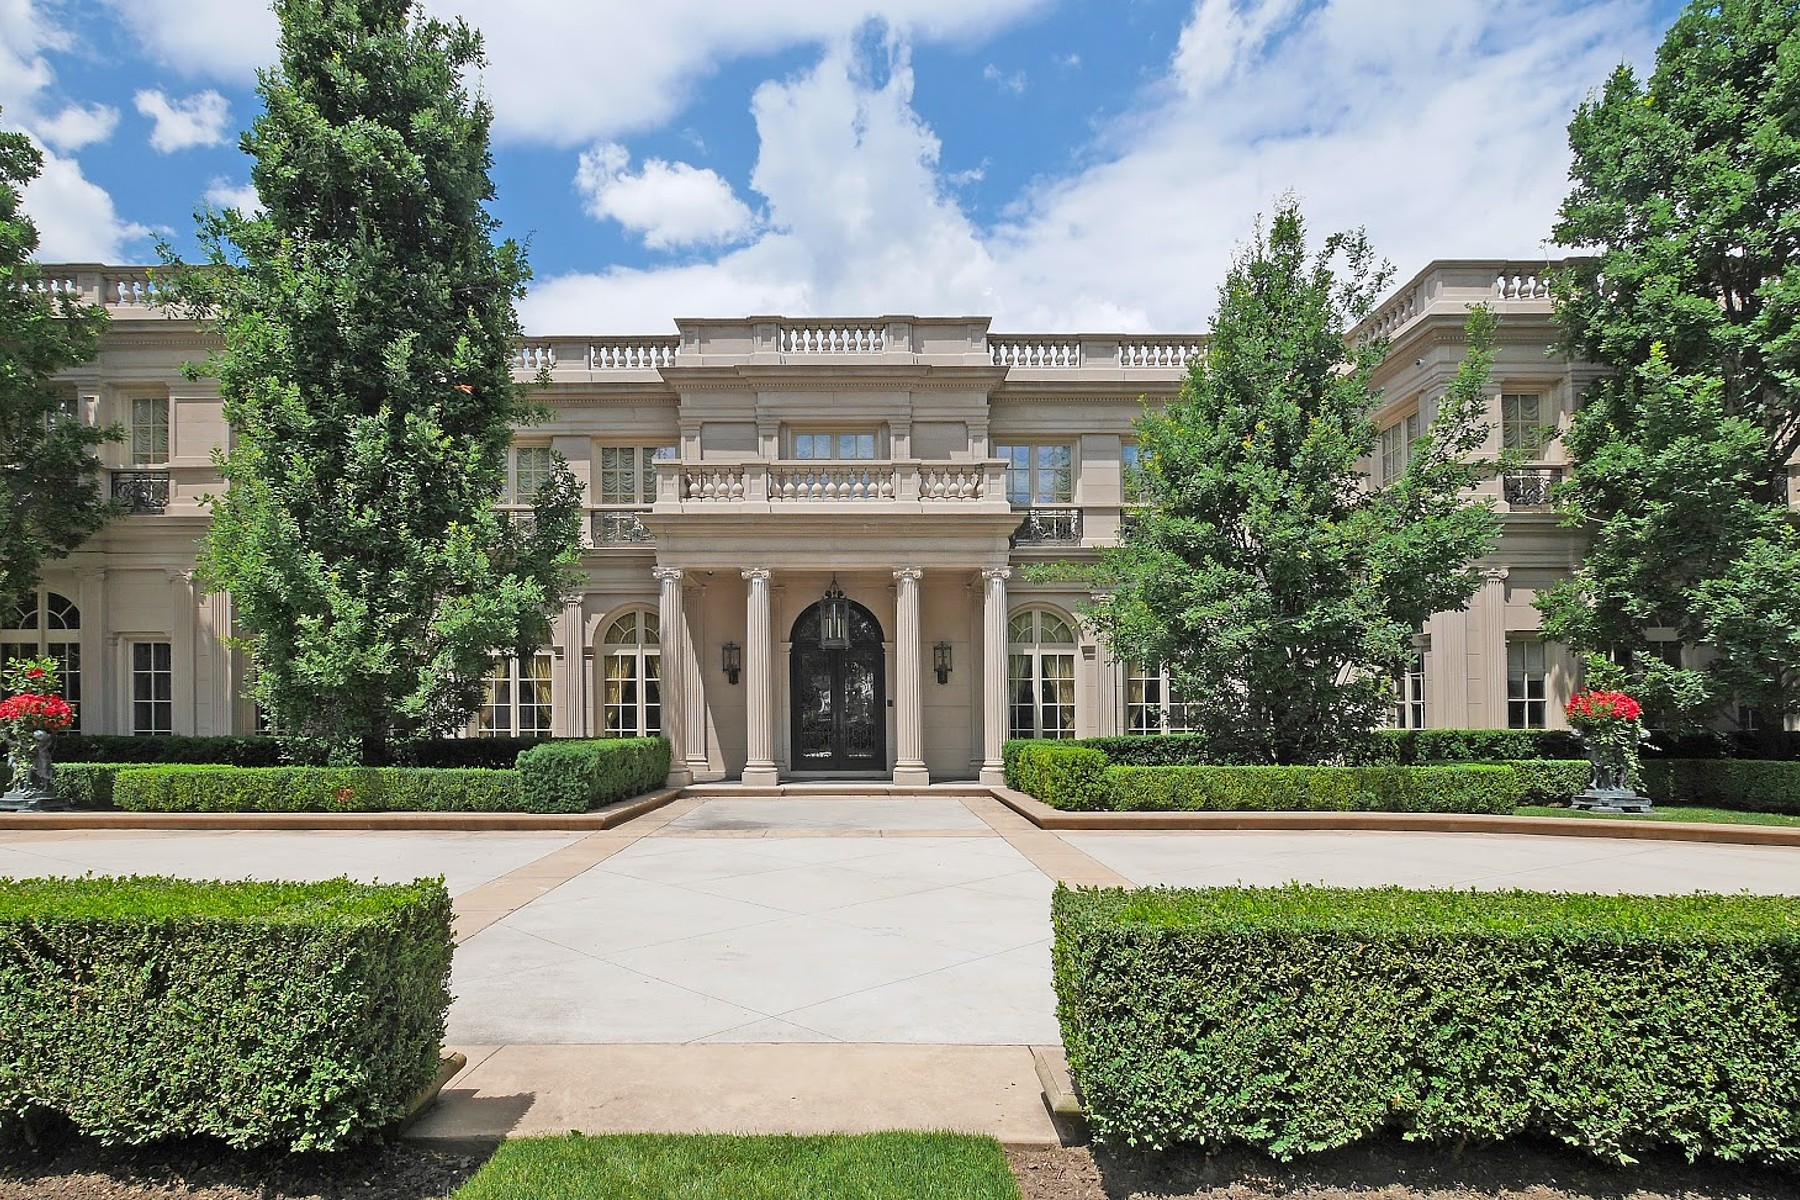 Maison unifamiliale pour l Vente à Grand Luxury Estate 489 Lakeshore Road East Oakville, Ontario L6K 1G4 Canada